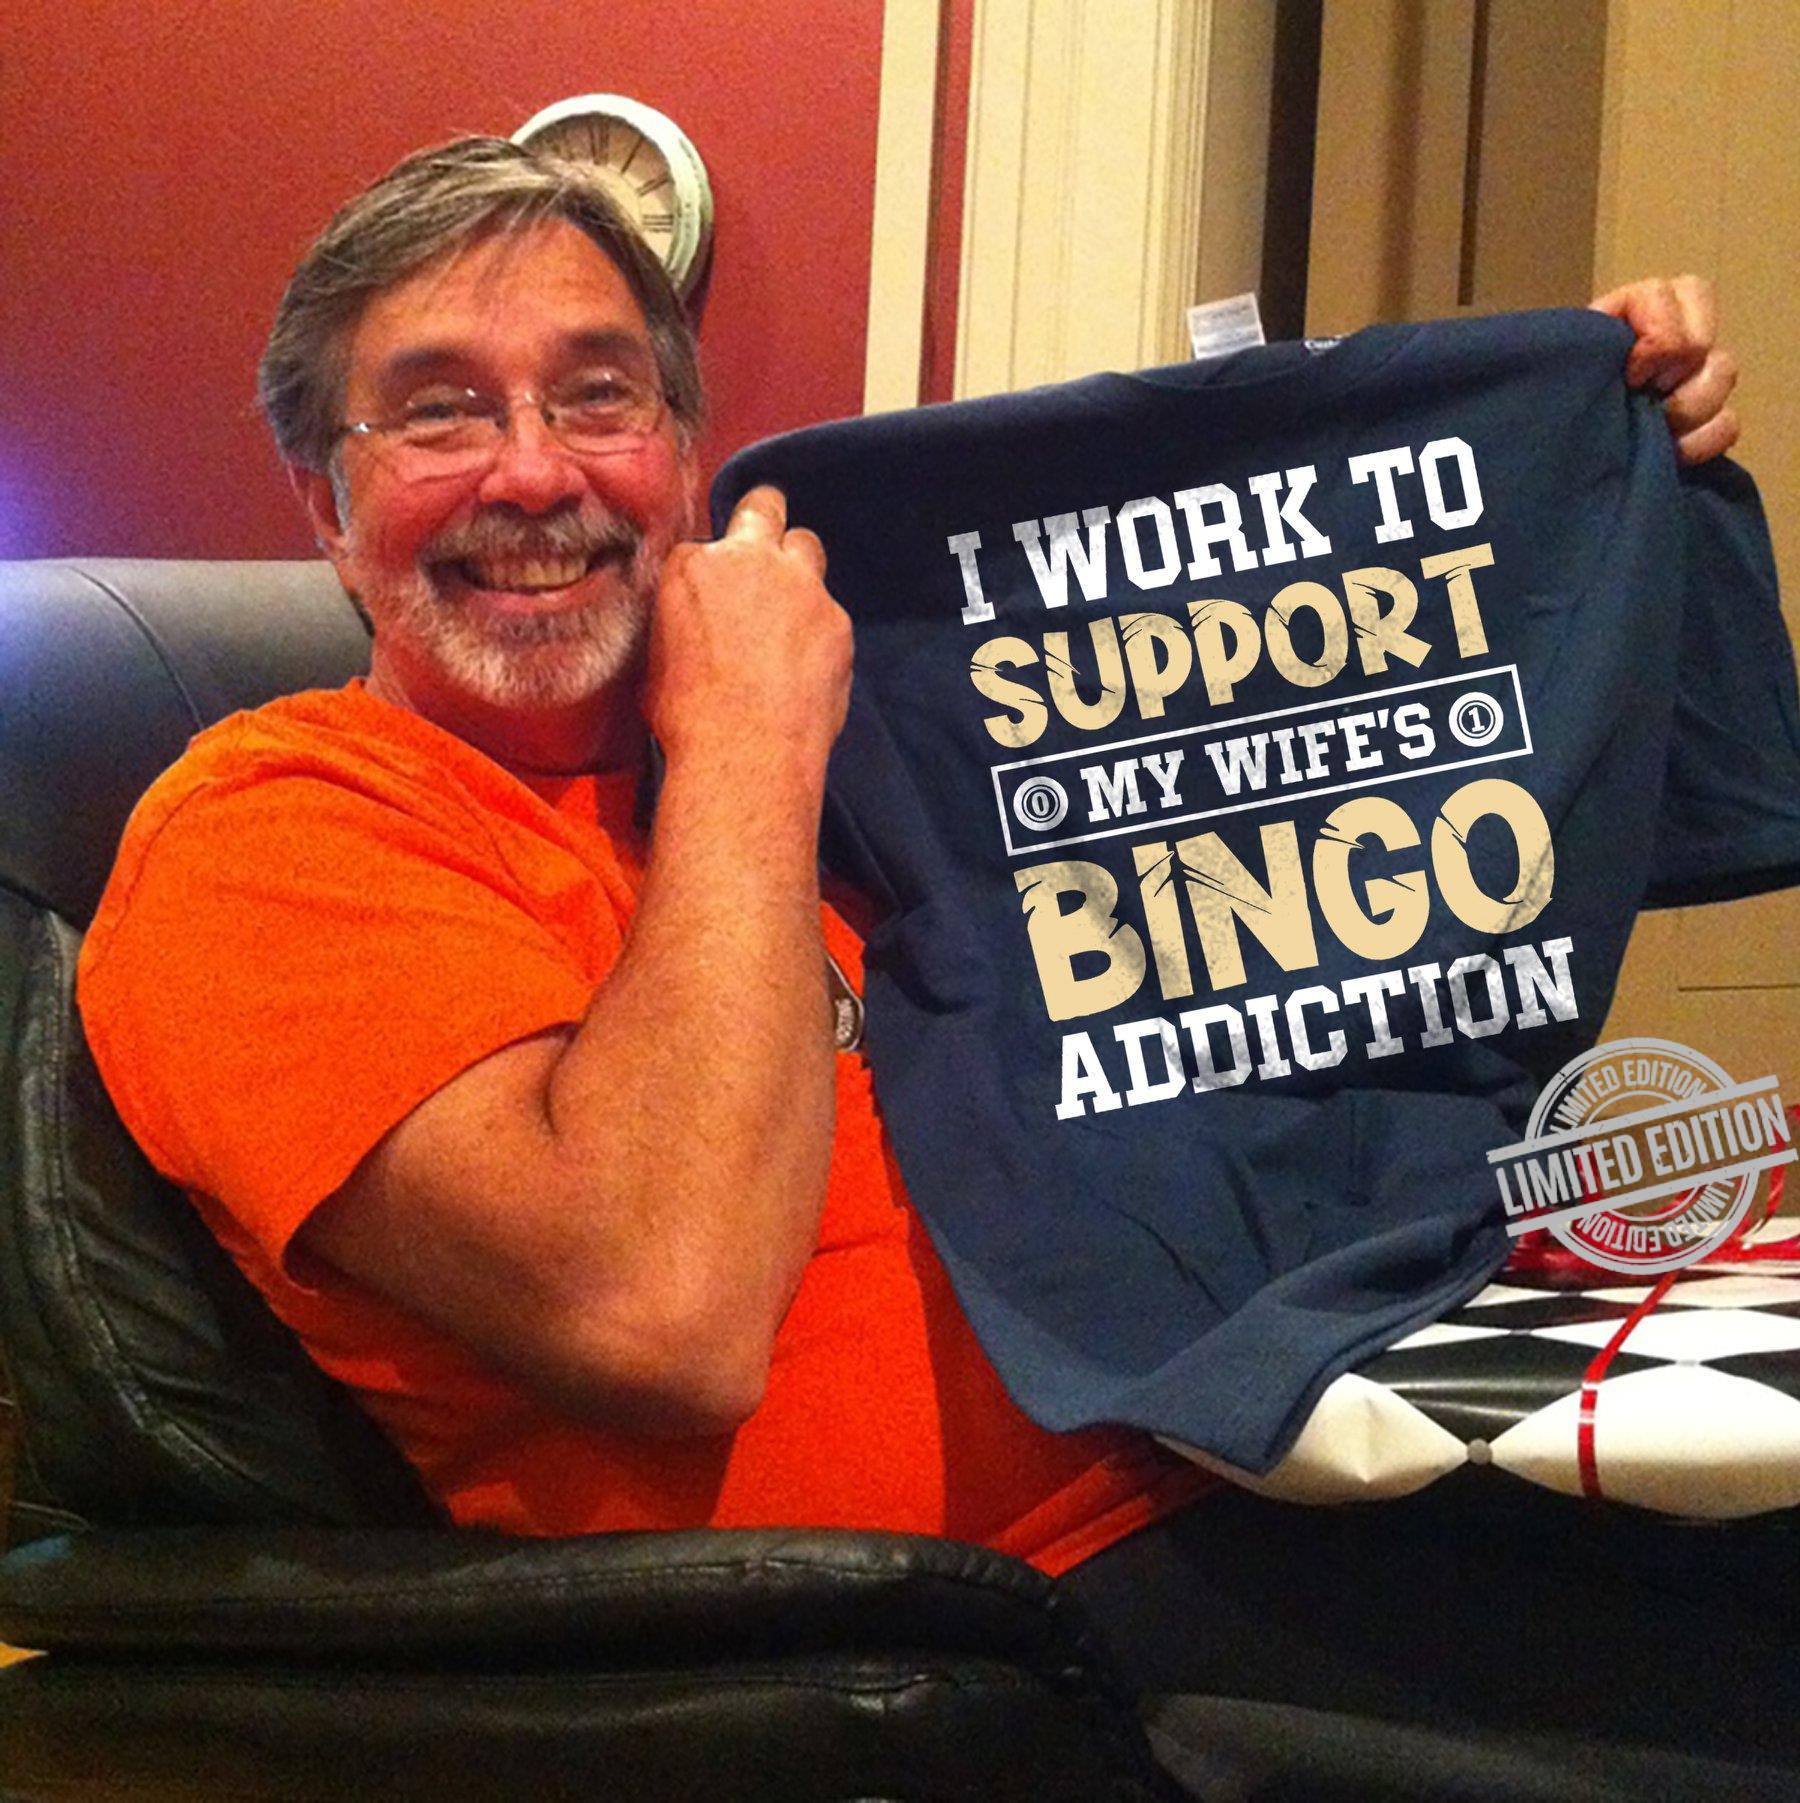 I Work To Support My Wife's Bingo Addiction Shirt